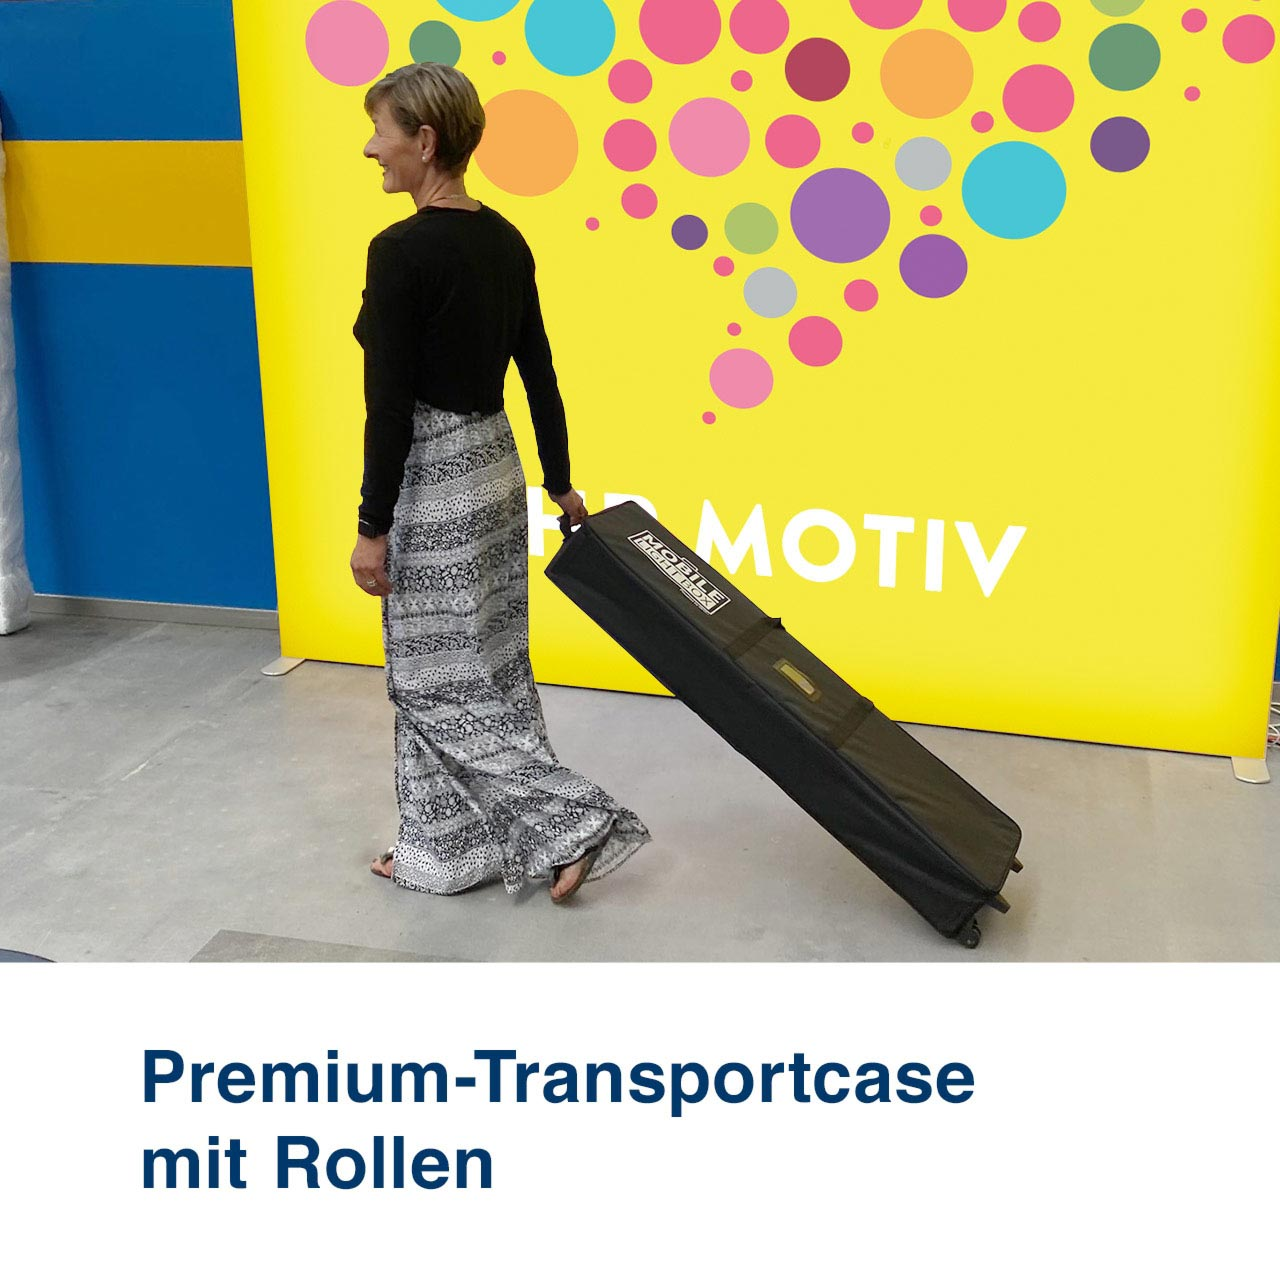 Mobile Light Box Transportcase Premium mit Rollen